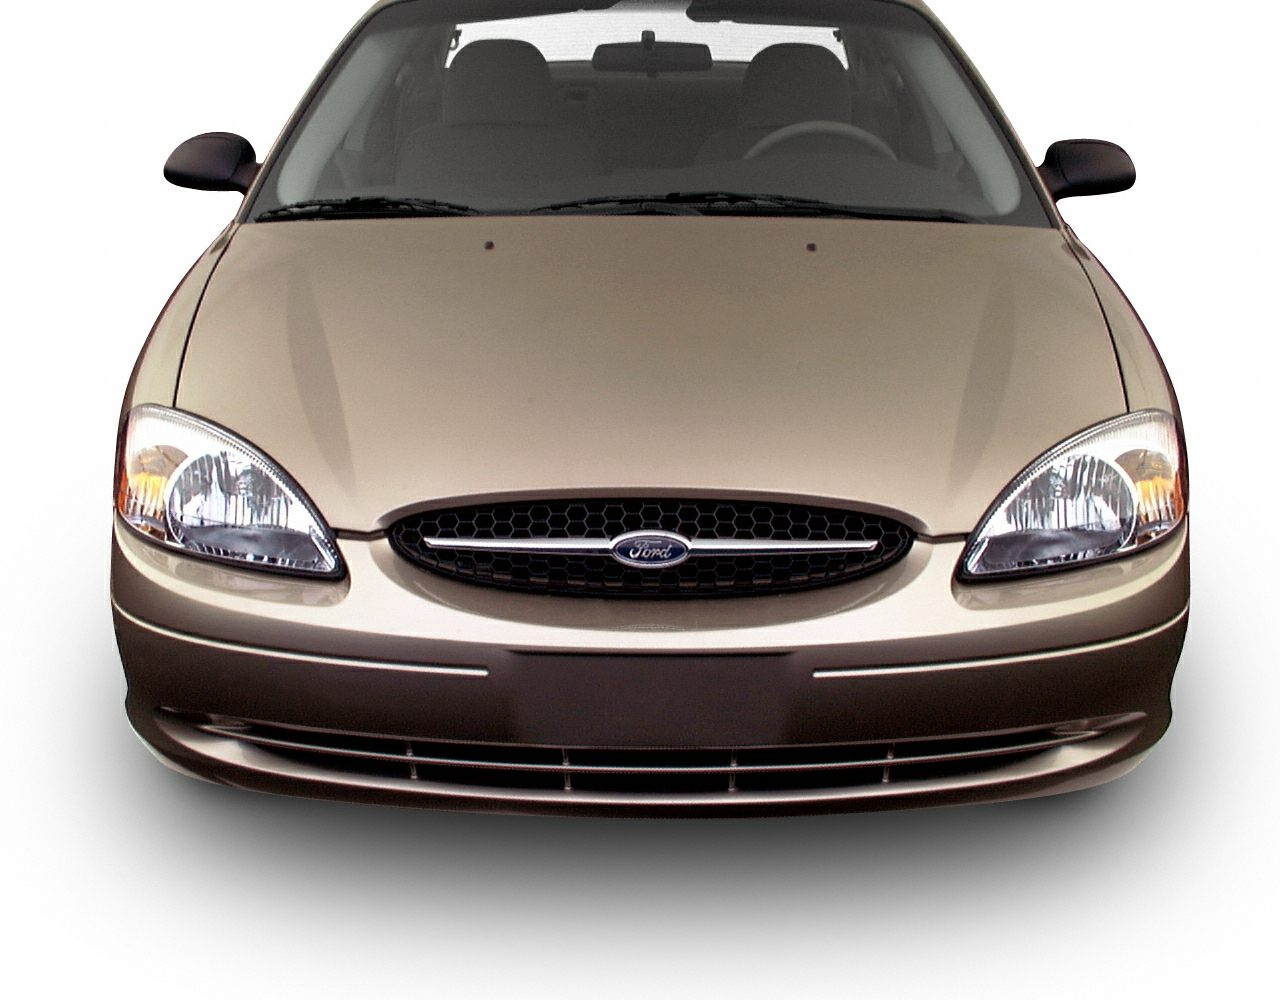 hight resolution of 2000 ford taurus exterior photo